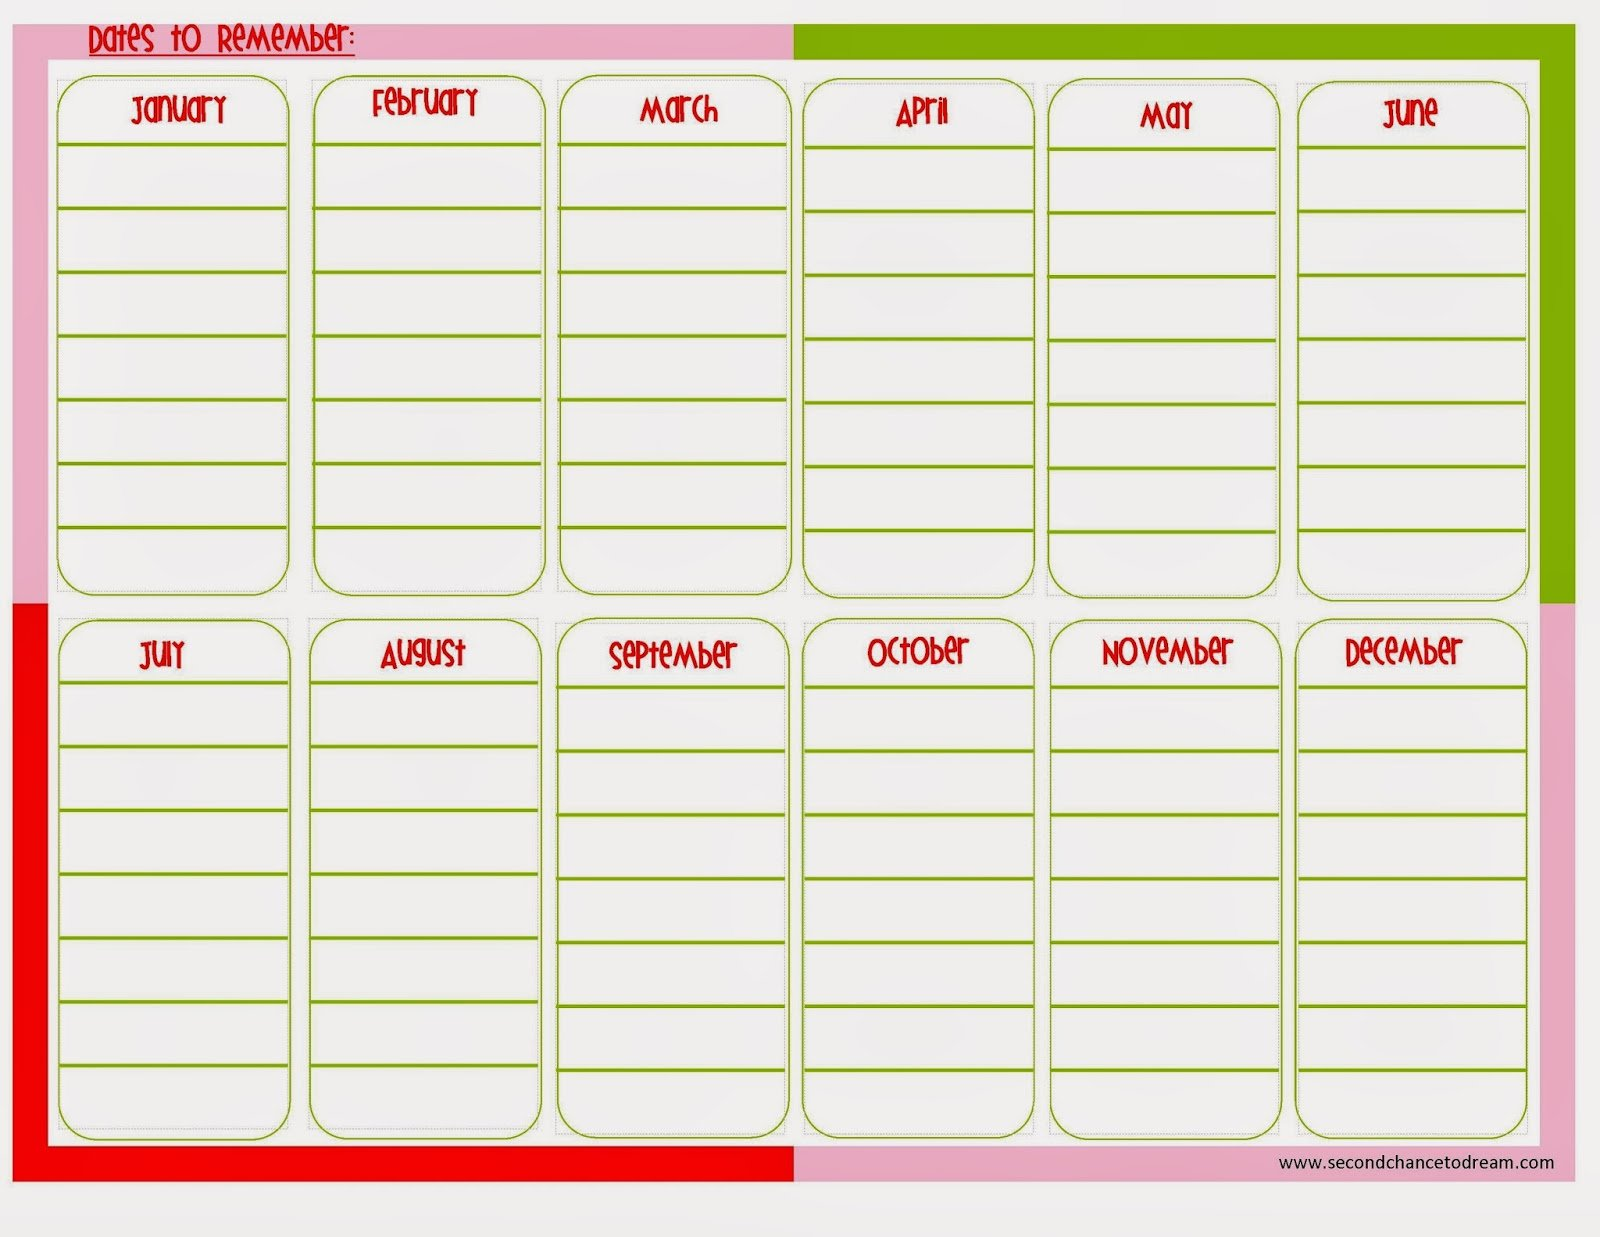 Dates+to+Remember {Free Printable Planner in Two Colors}